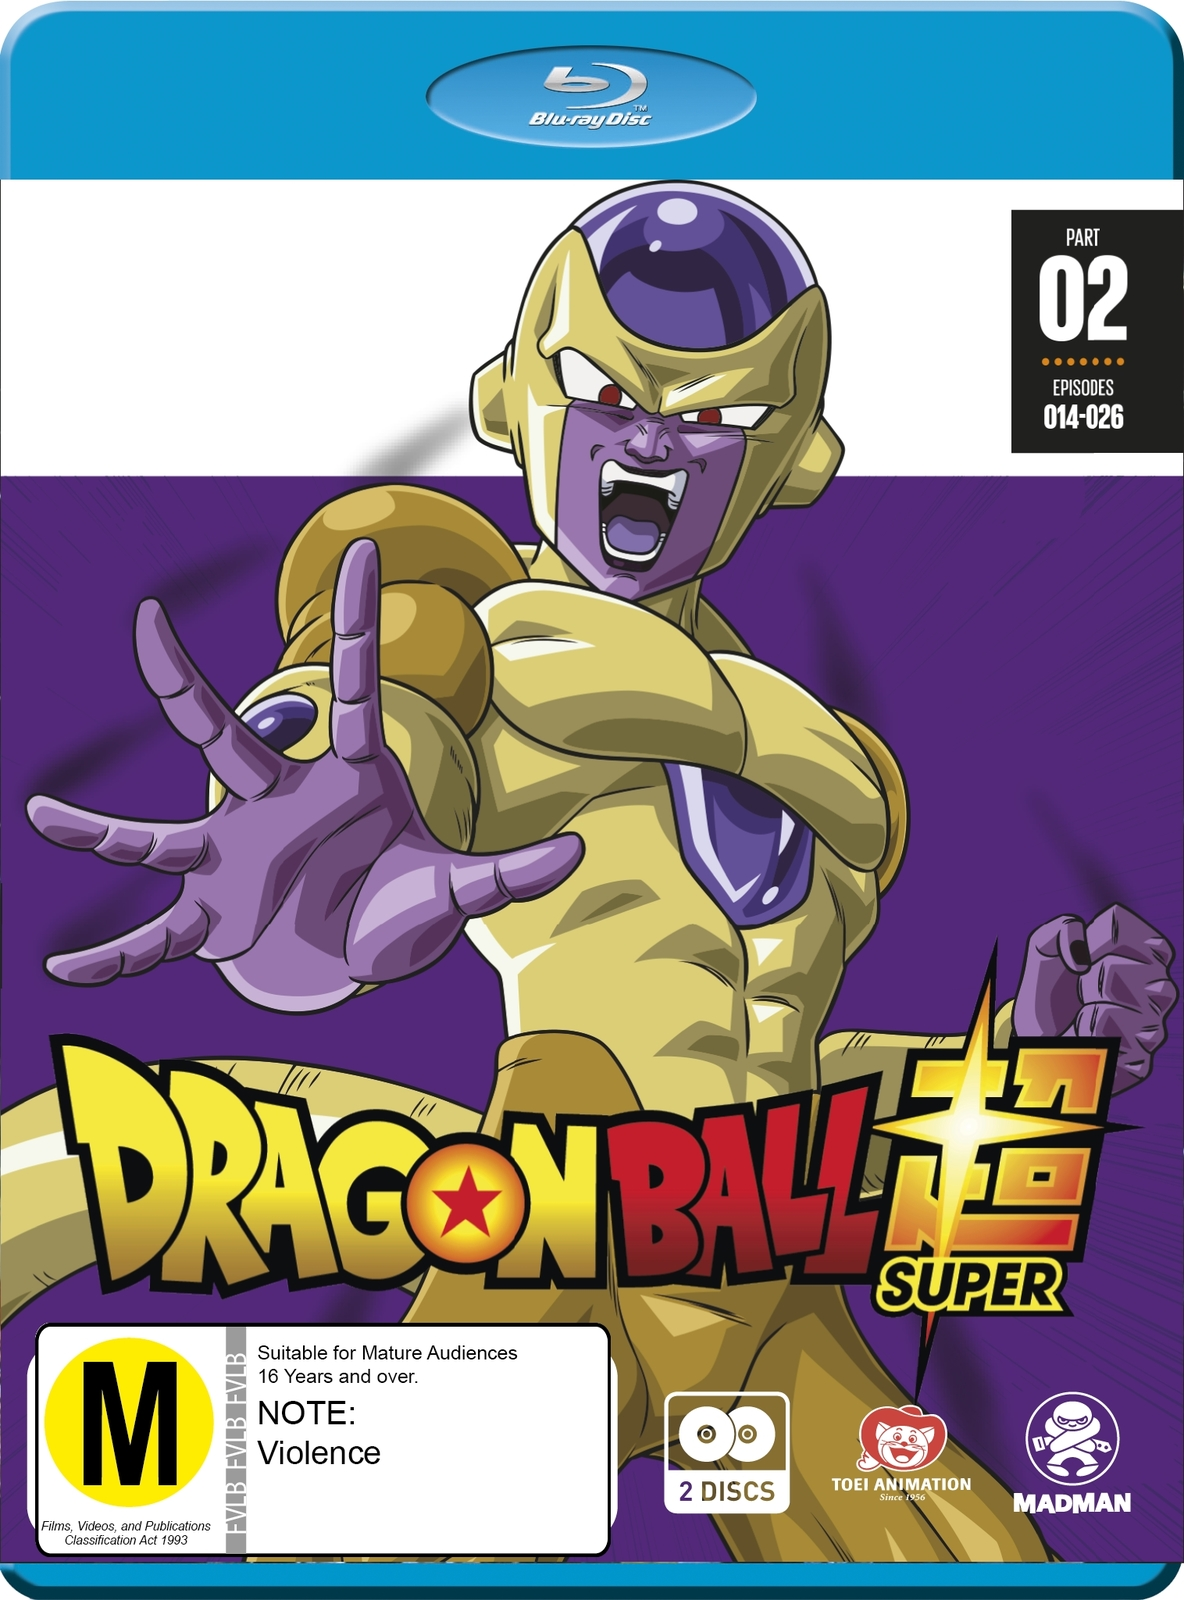 Dragon Ball Super - Part 2 (Eps 14 - 26) on Blu-ray image